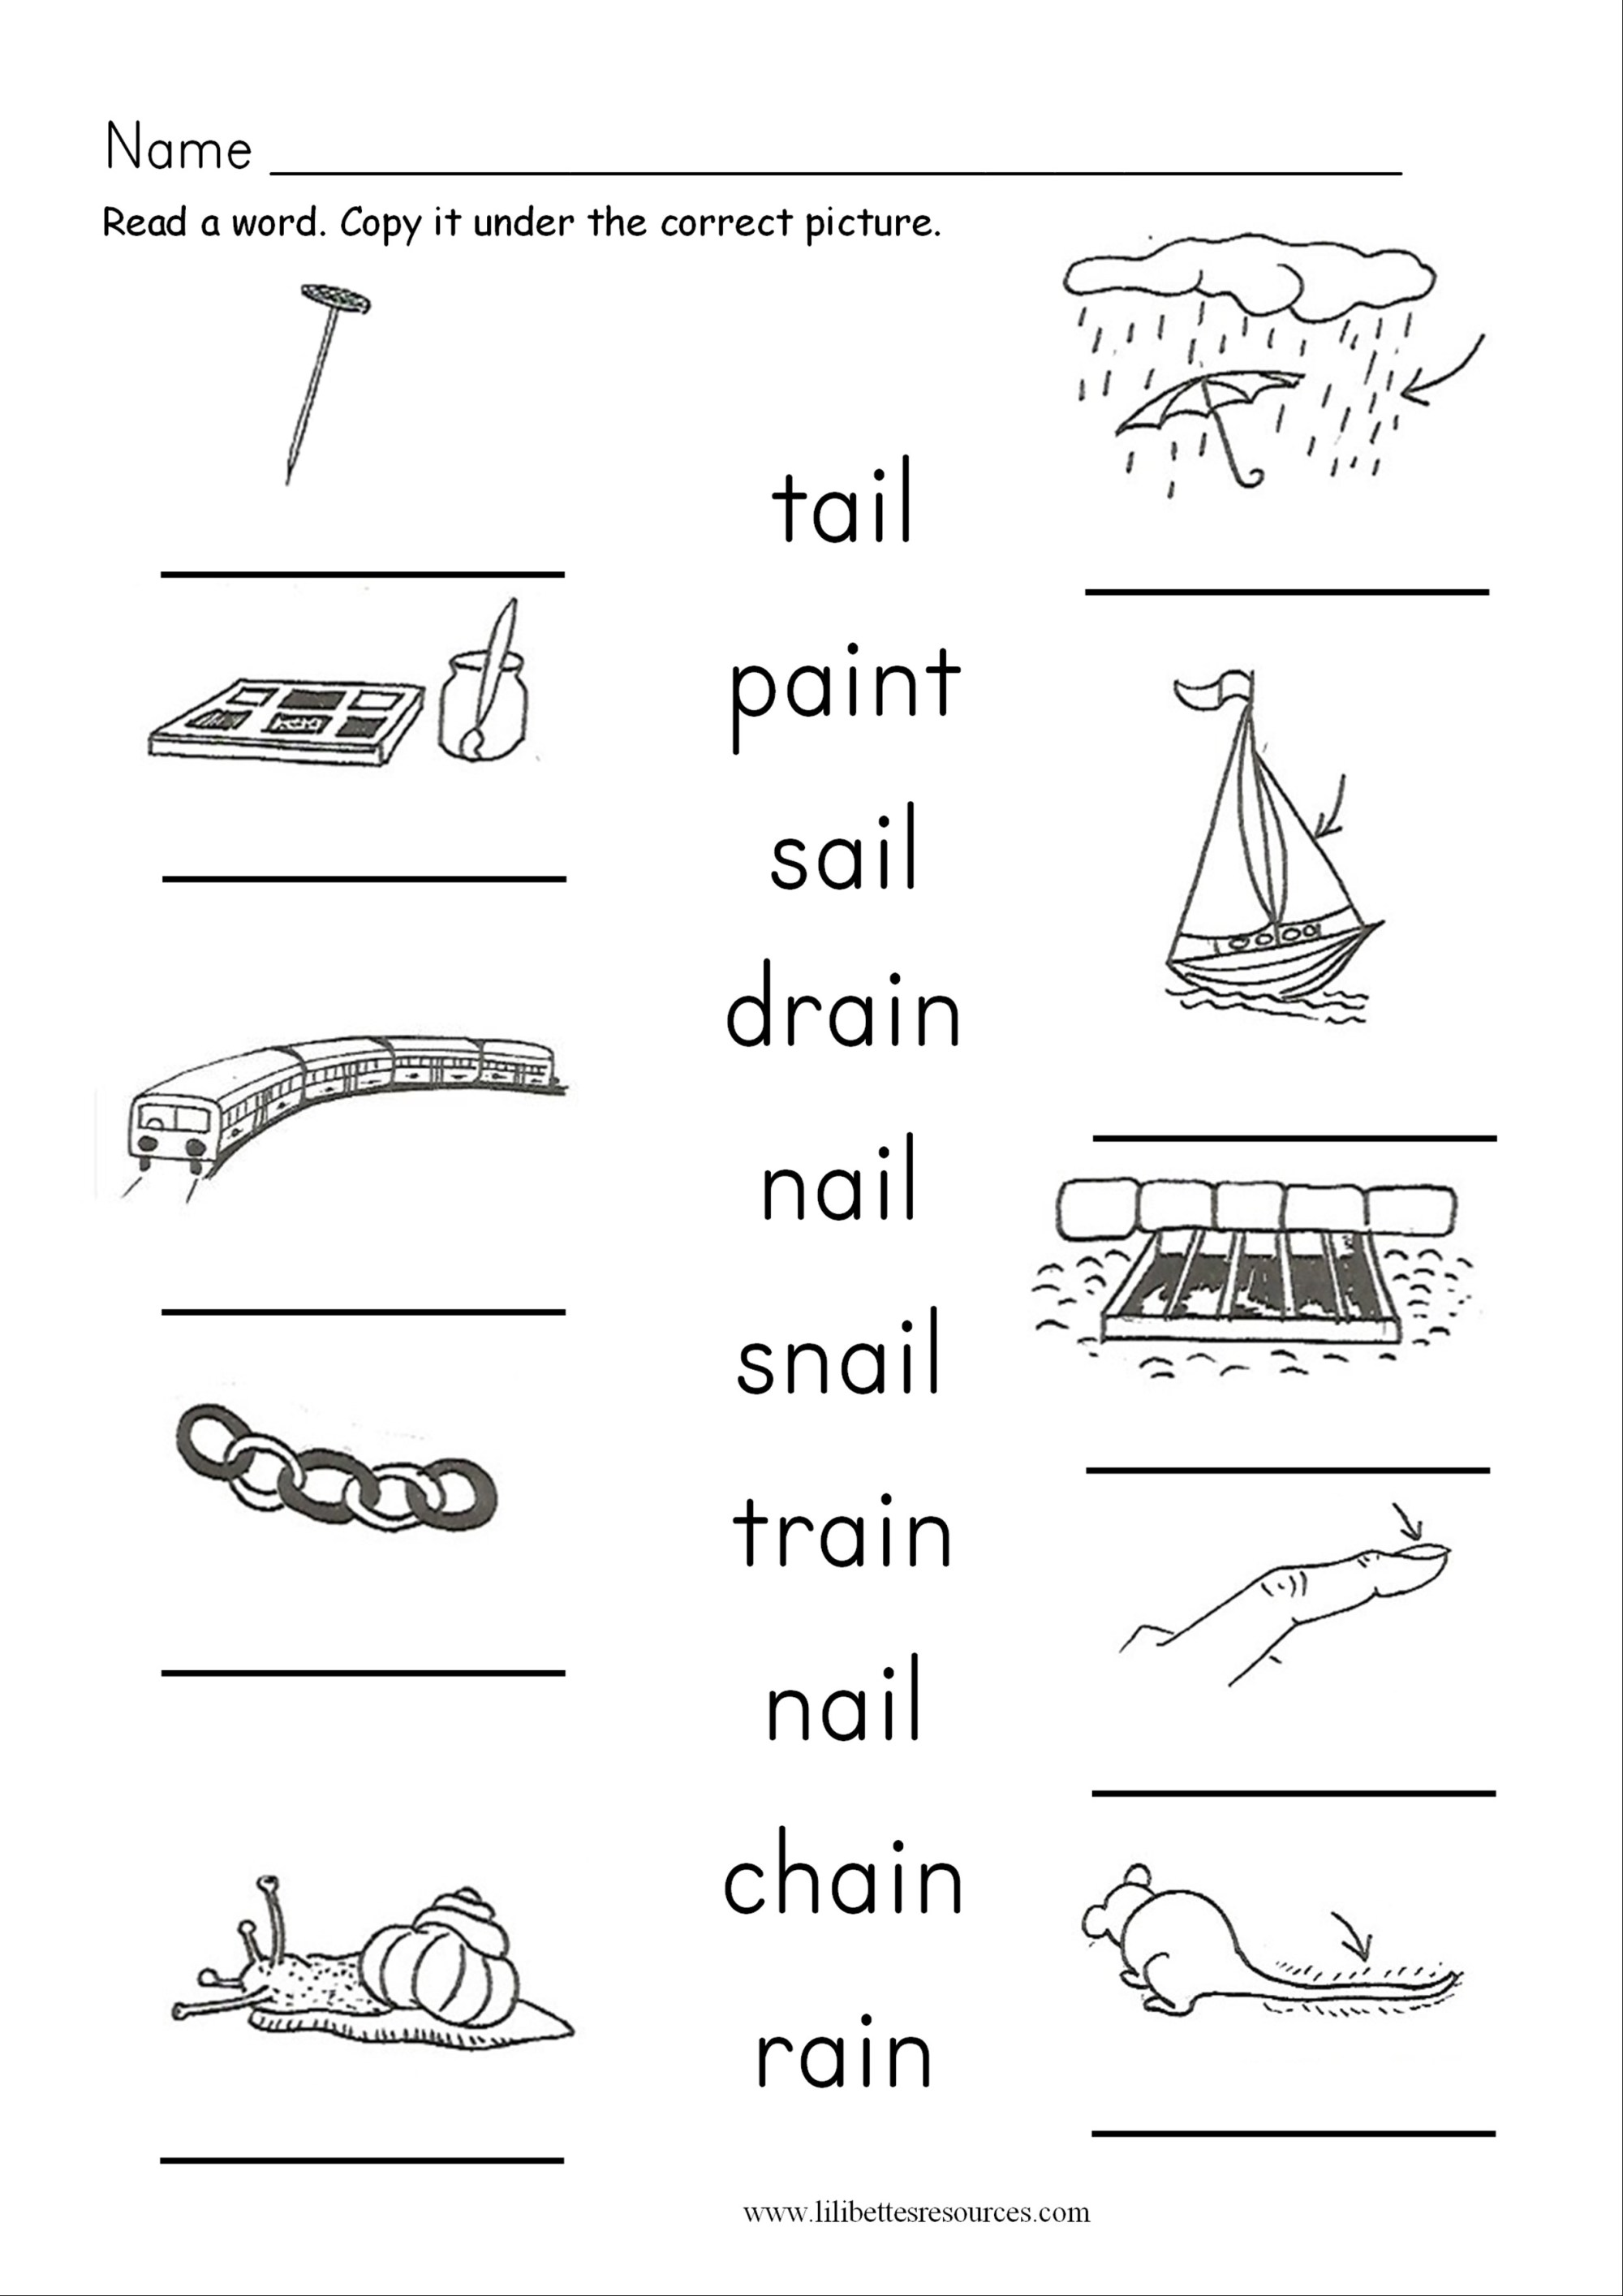 hight resolution of Phonics Ai Worksheets   Printable Worksheets and Activities for Teachers